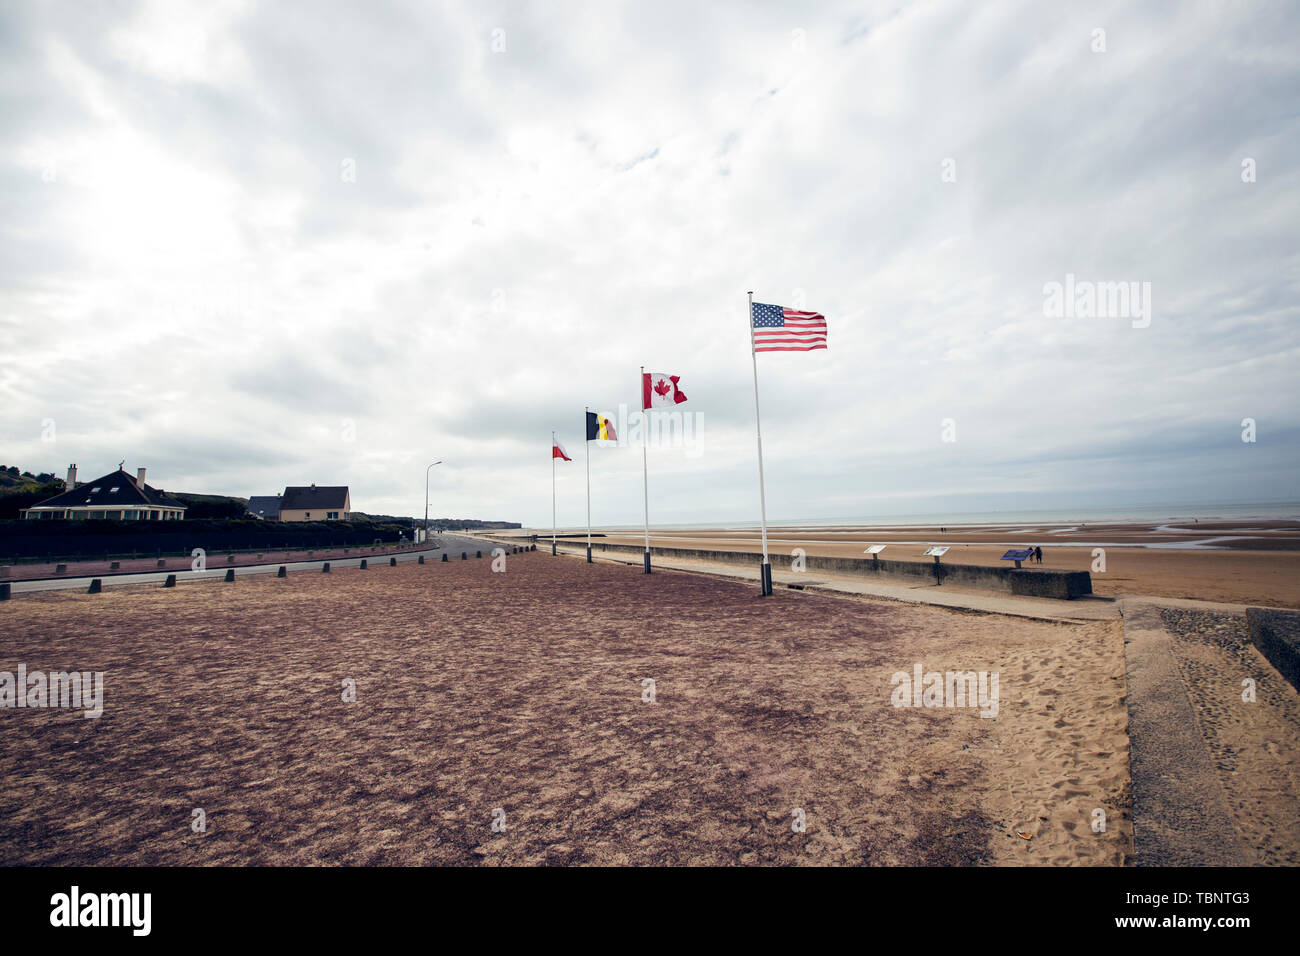 France, Normandy, Omaha, World War II, Normandy landings, D-day, Operation Overlord, landings, monuments, museums, World War II, churches, tanks, cannons Stock Photo